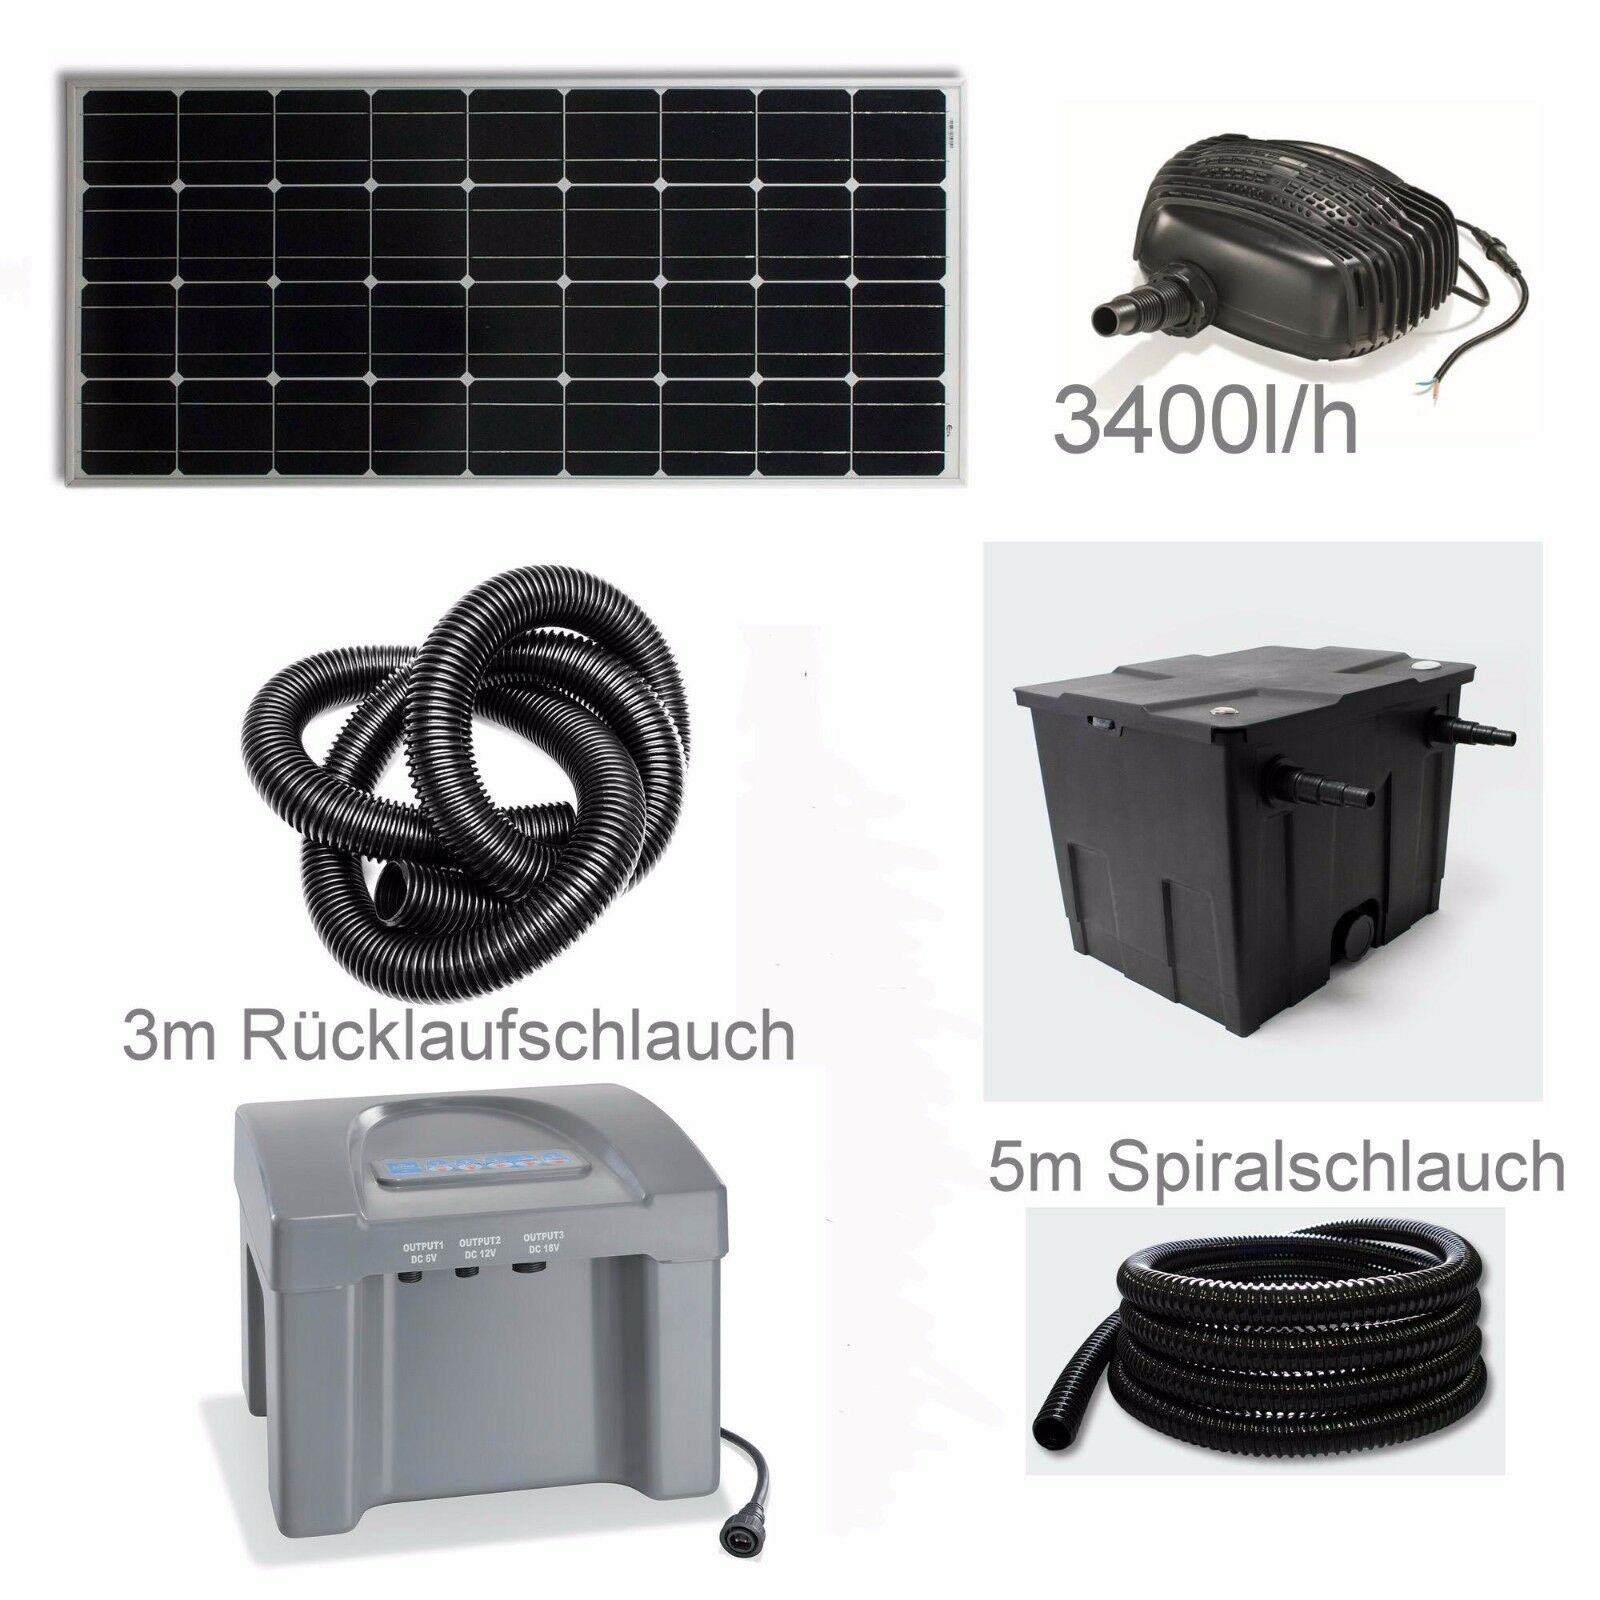 80 w solar teich pumpe akku bachlauf filter tauch gartenteich batterie garten eur 455 00. Black Bedroom Furniture Sets. Home Design Ideas